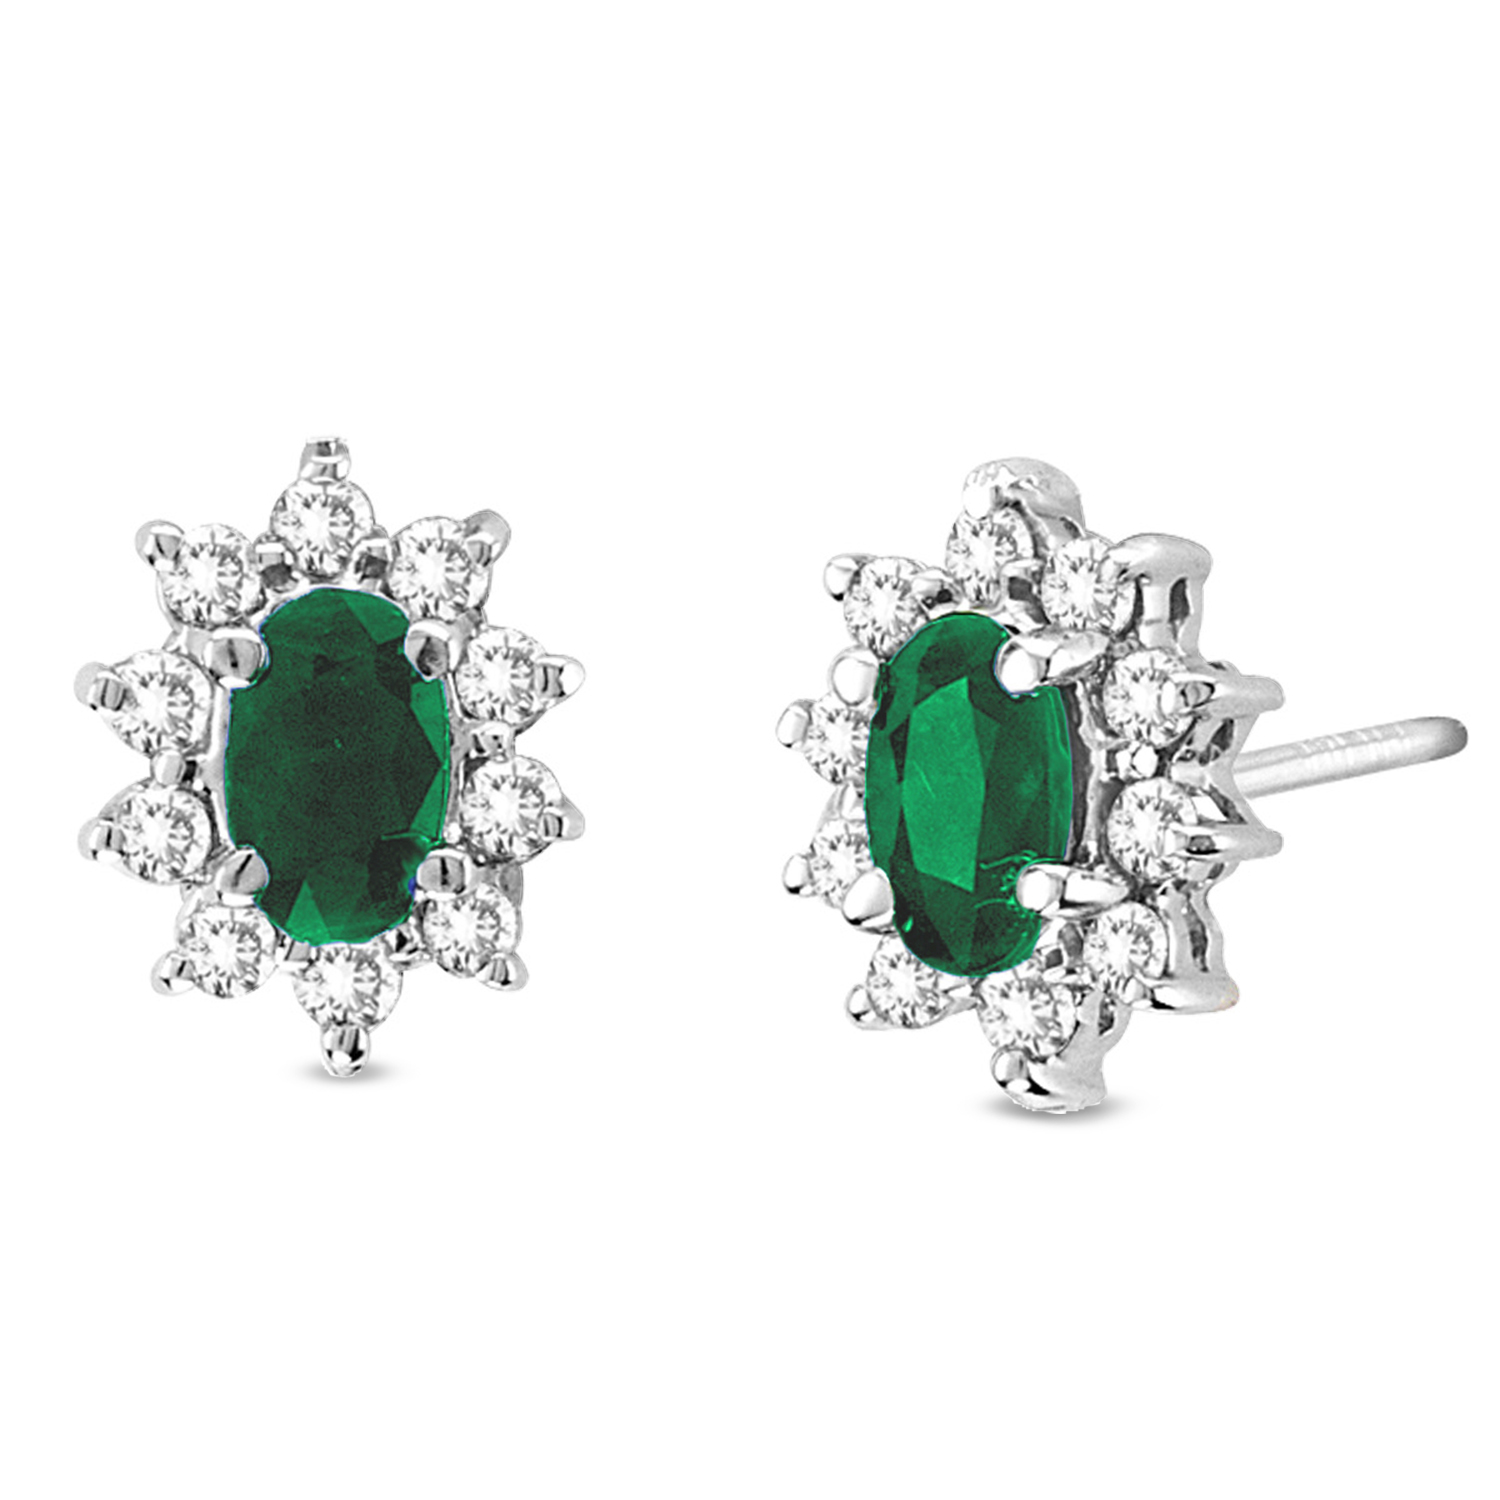 View 0.70cttw Diamond and Emerald Earring in 14k Gold